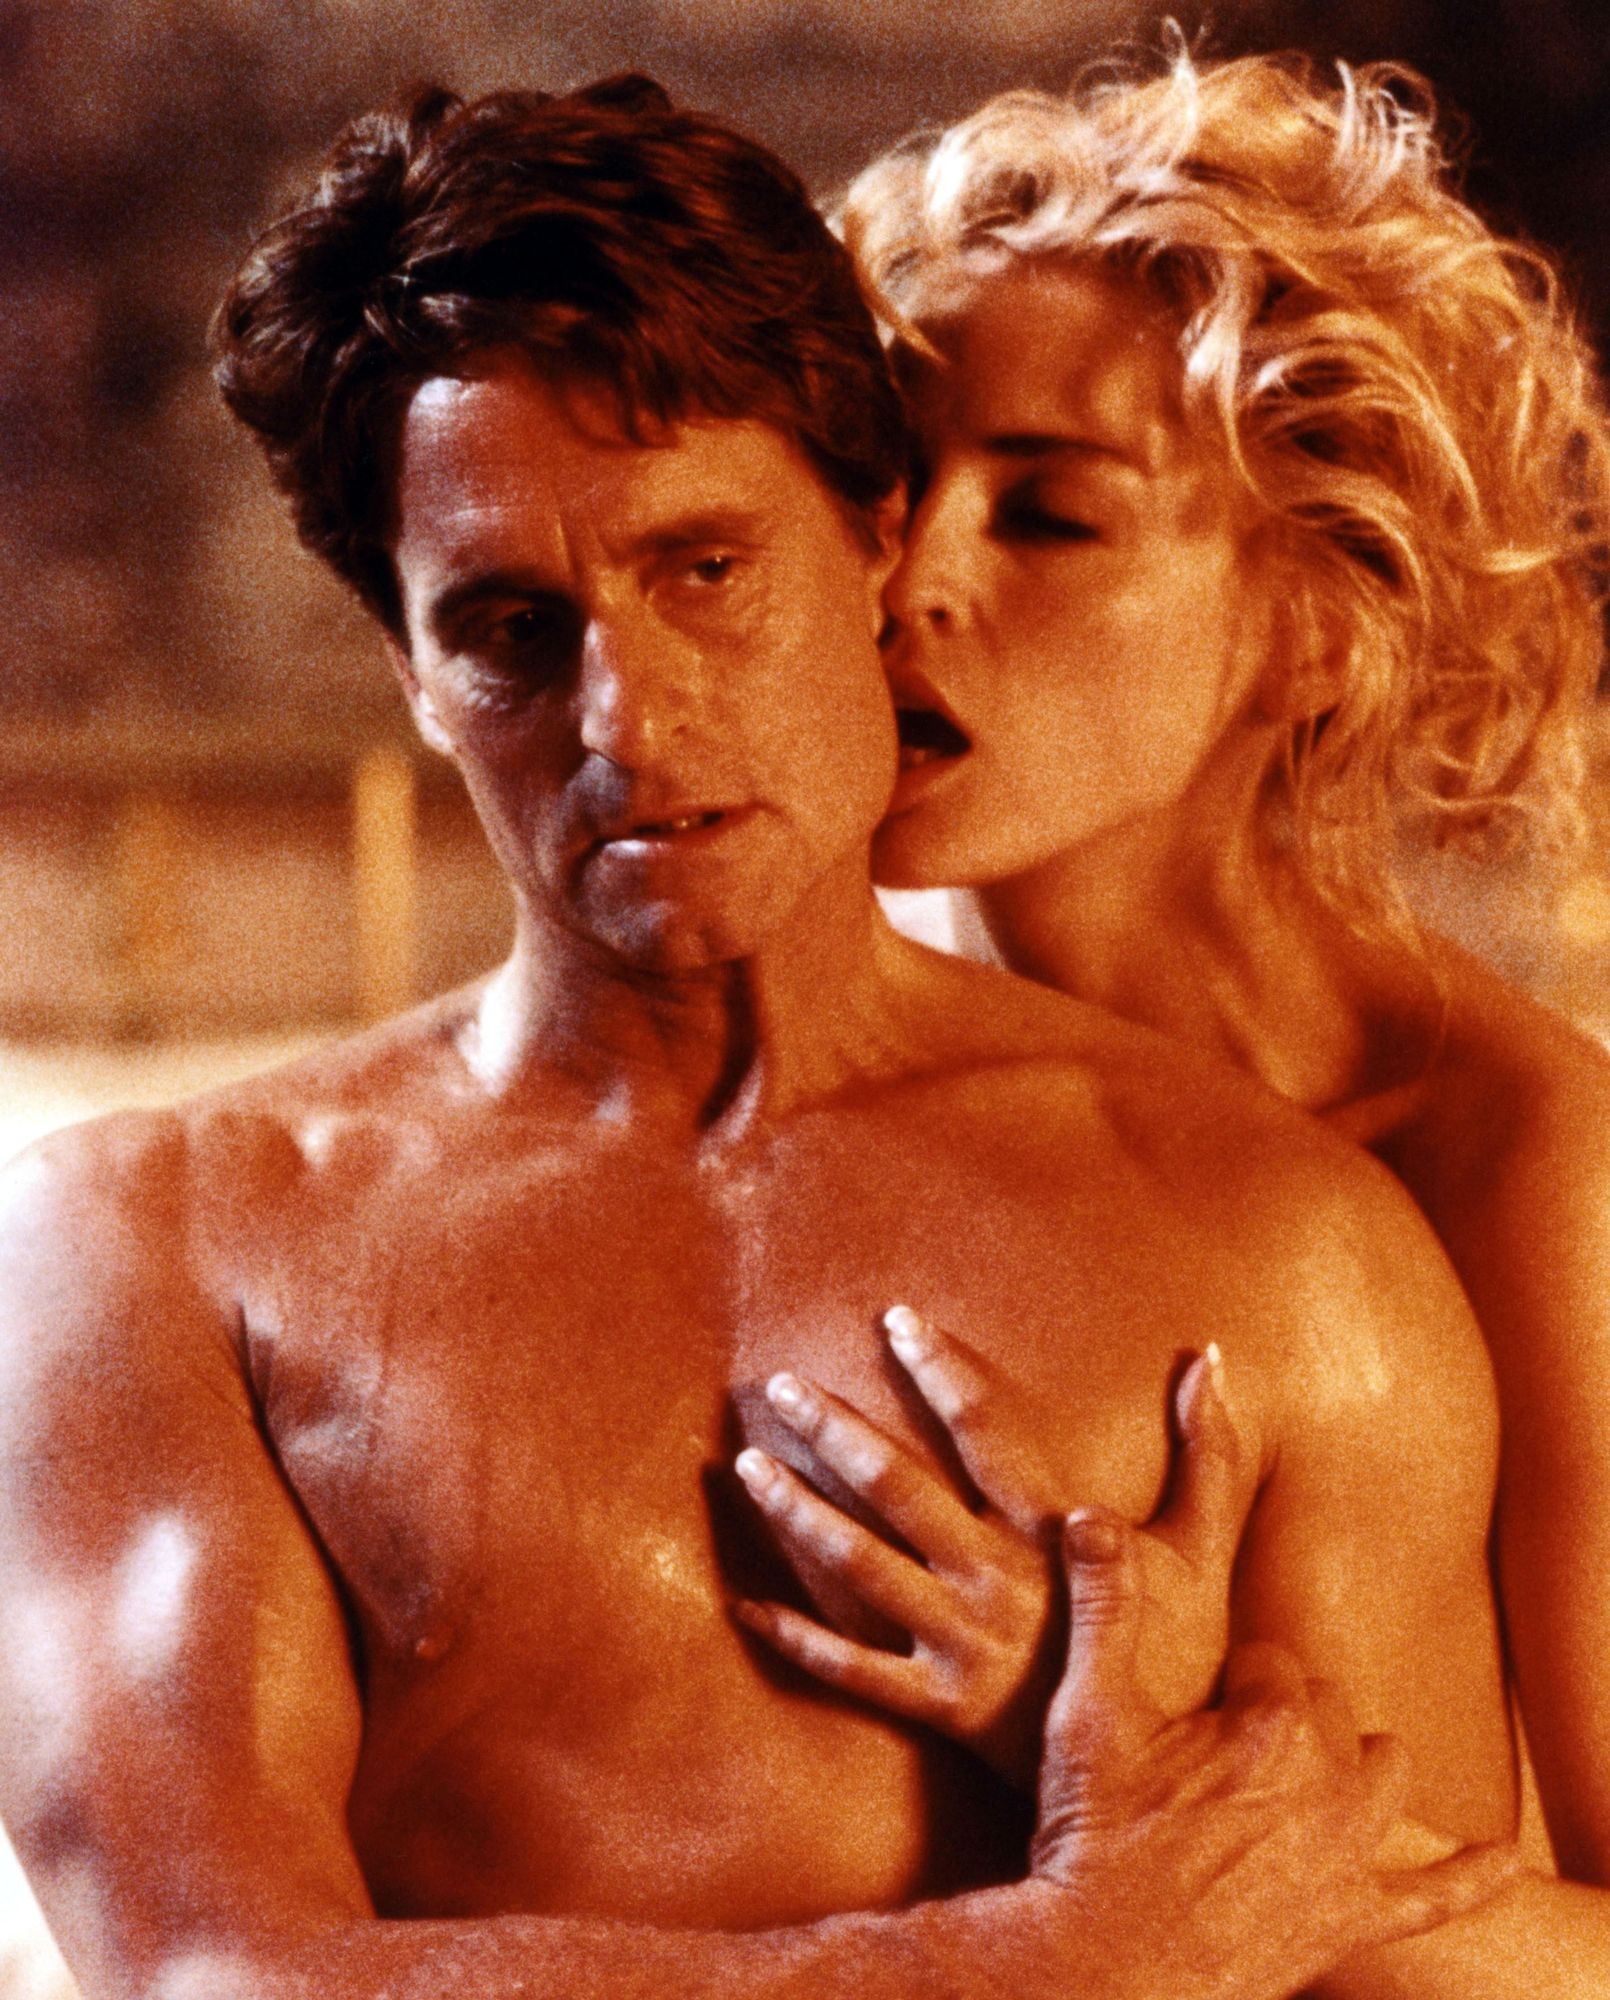 """Basic Instinct"", thriller érotique avec Michael Douglas et Sharon Stone."